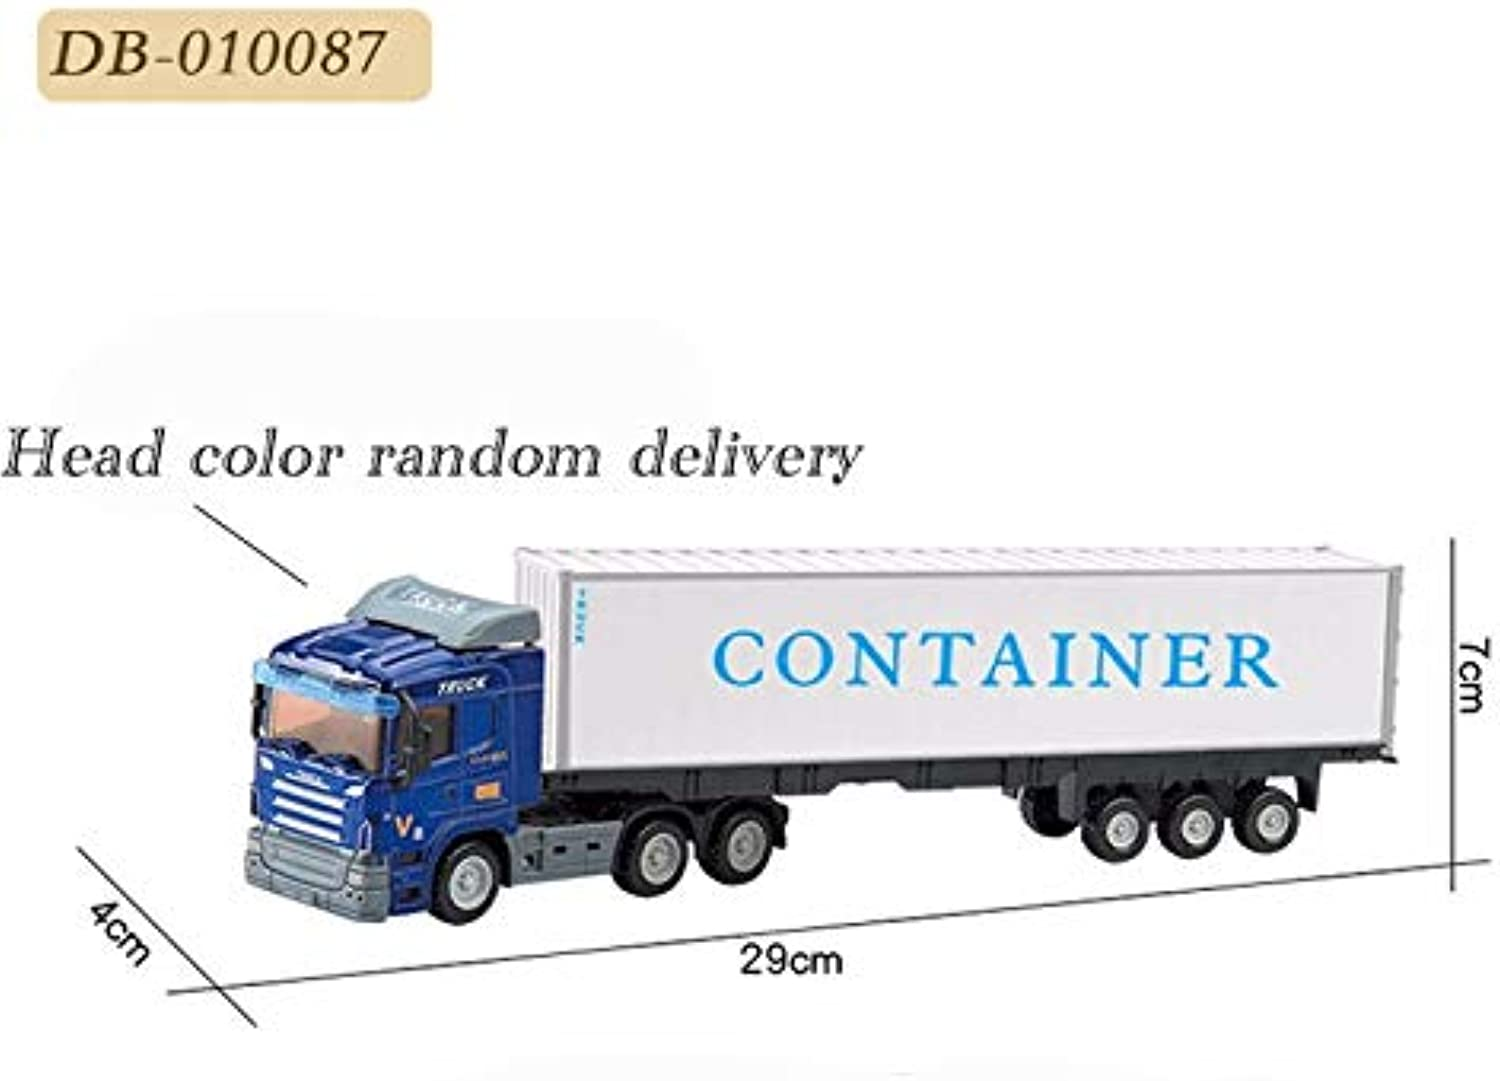 Generic 1 55 Truck Classical Model Cars Metal Alloy Diecast Trucks Pull Back Construction Vehicle Simulation Car Toy Toys for Boys DB010087